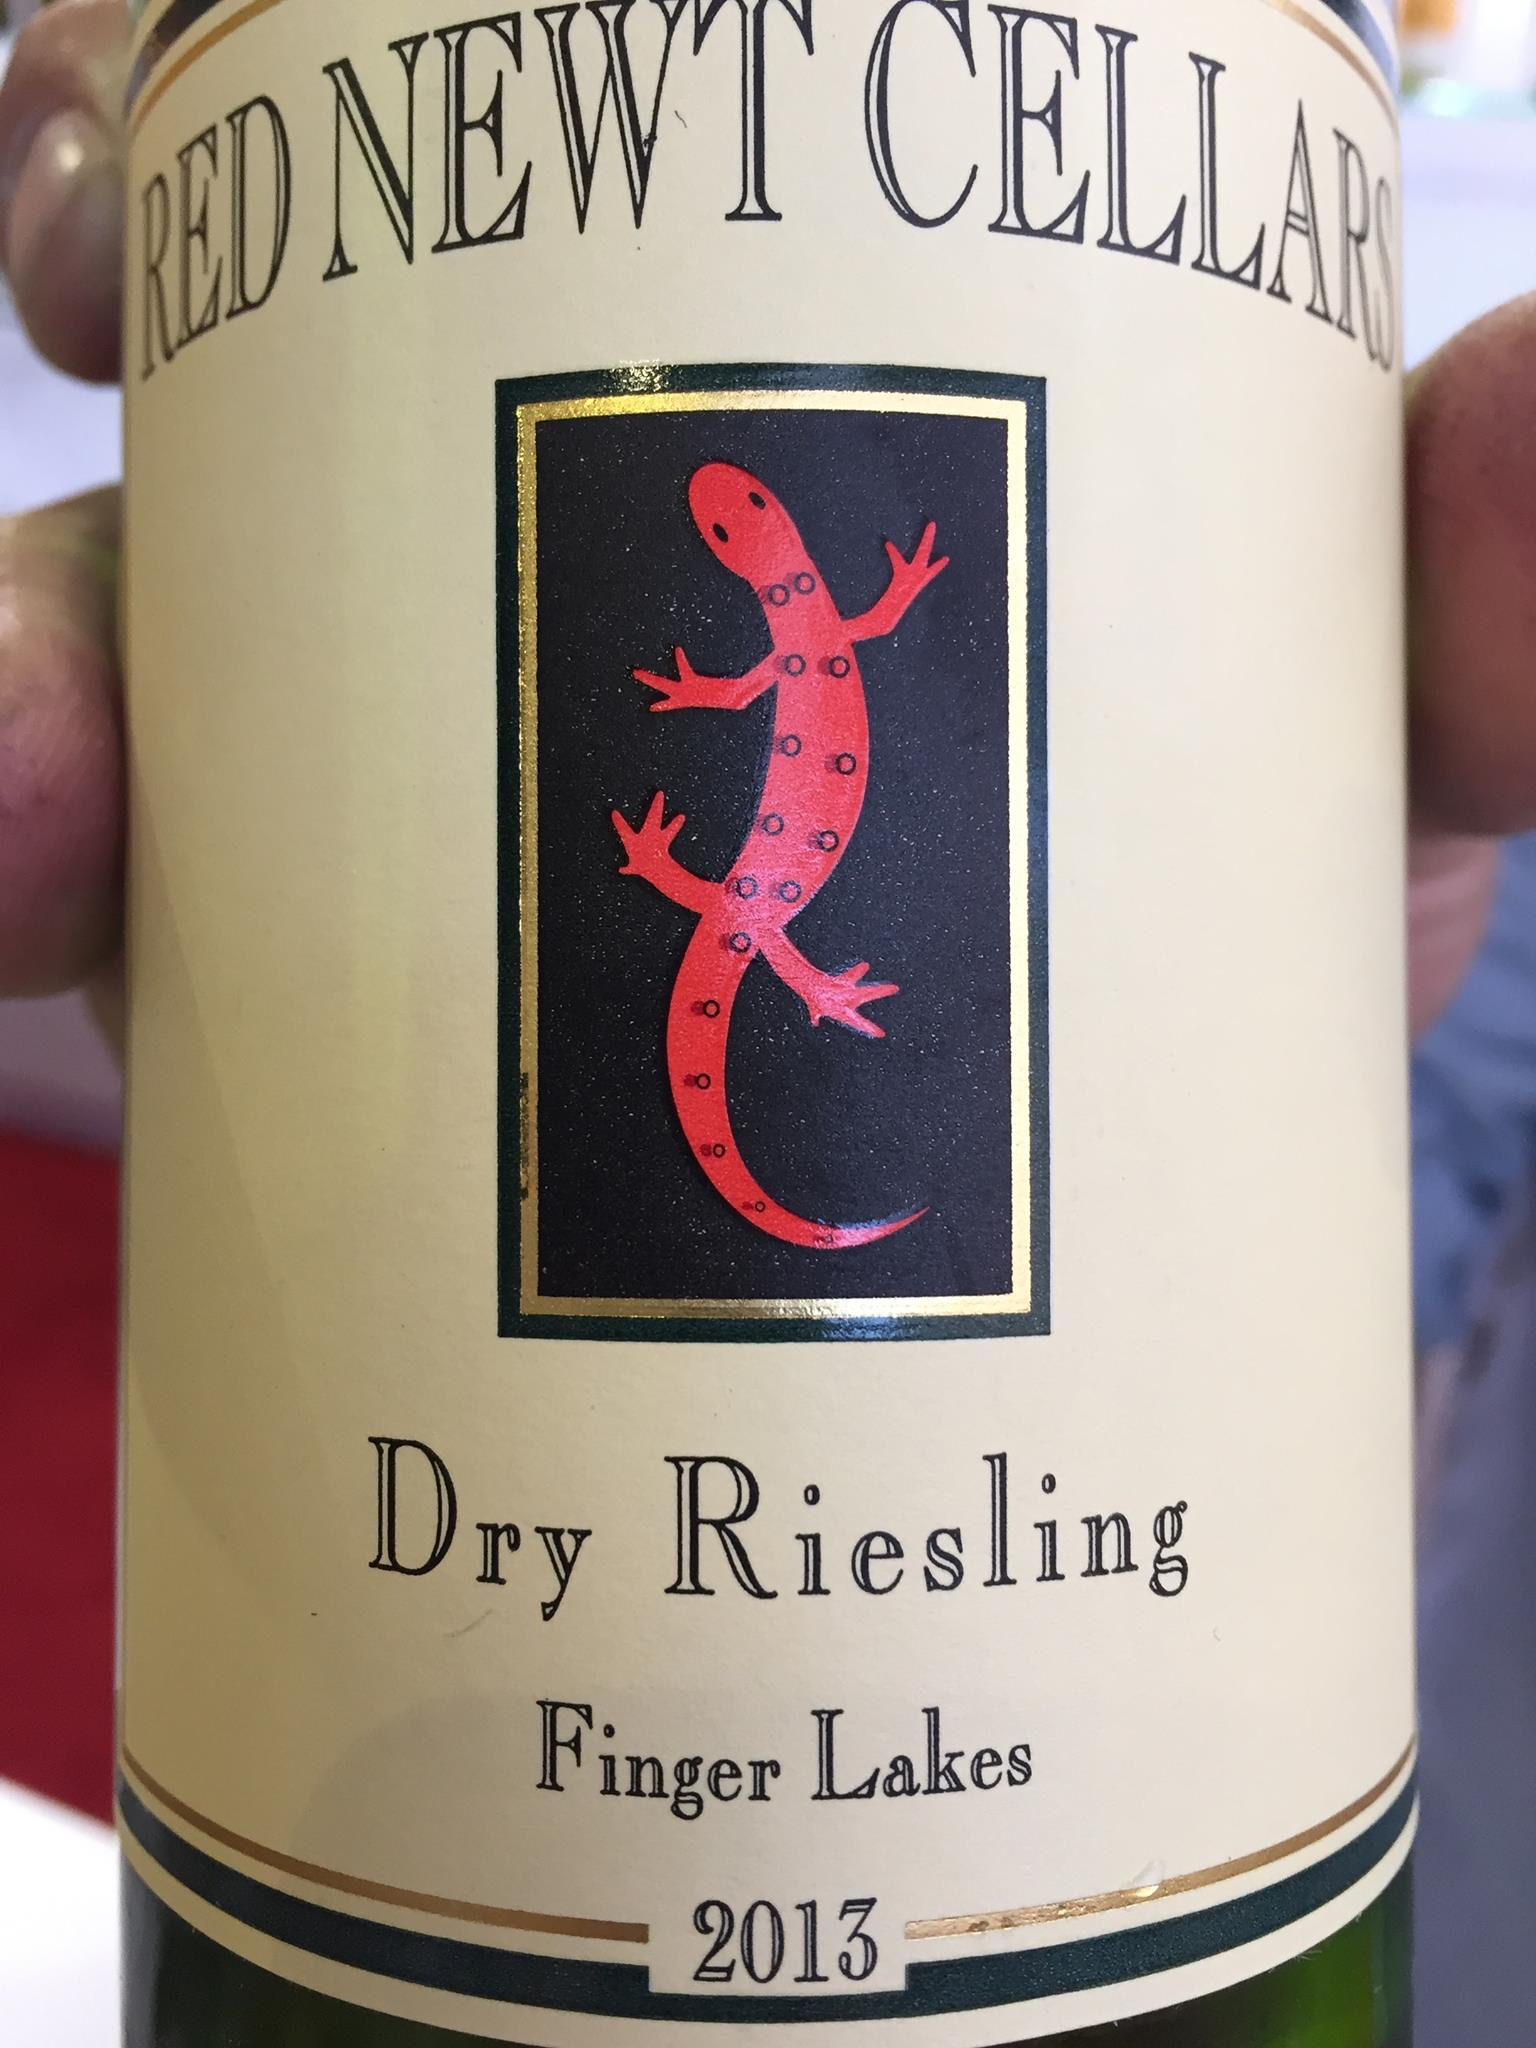 Red Newt Cellars – Dry Riesling 2013 – Finger Lakes